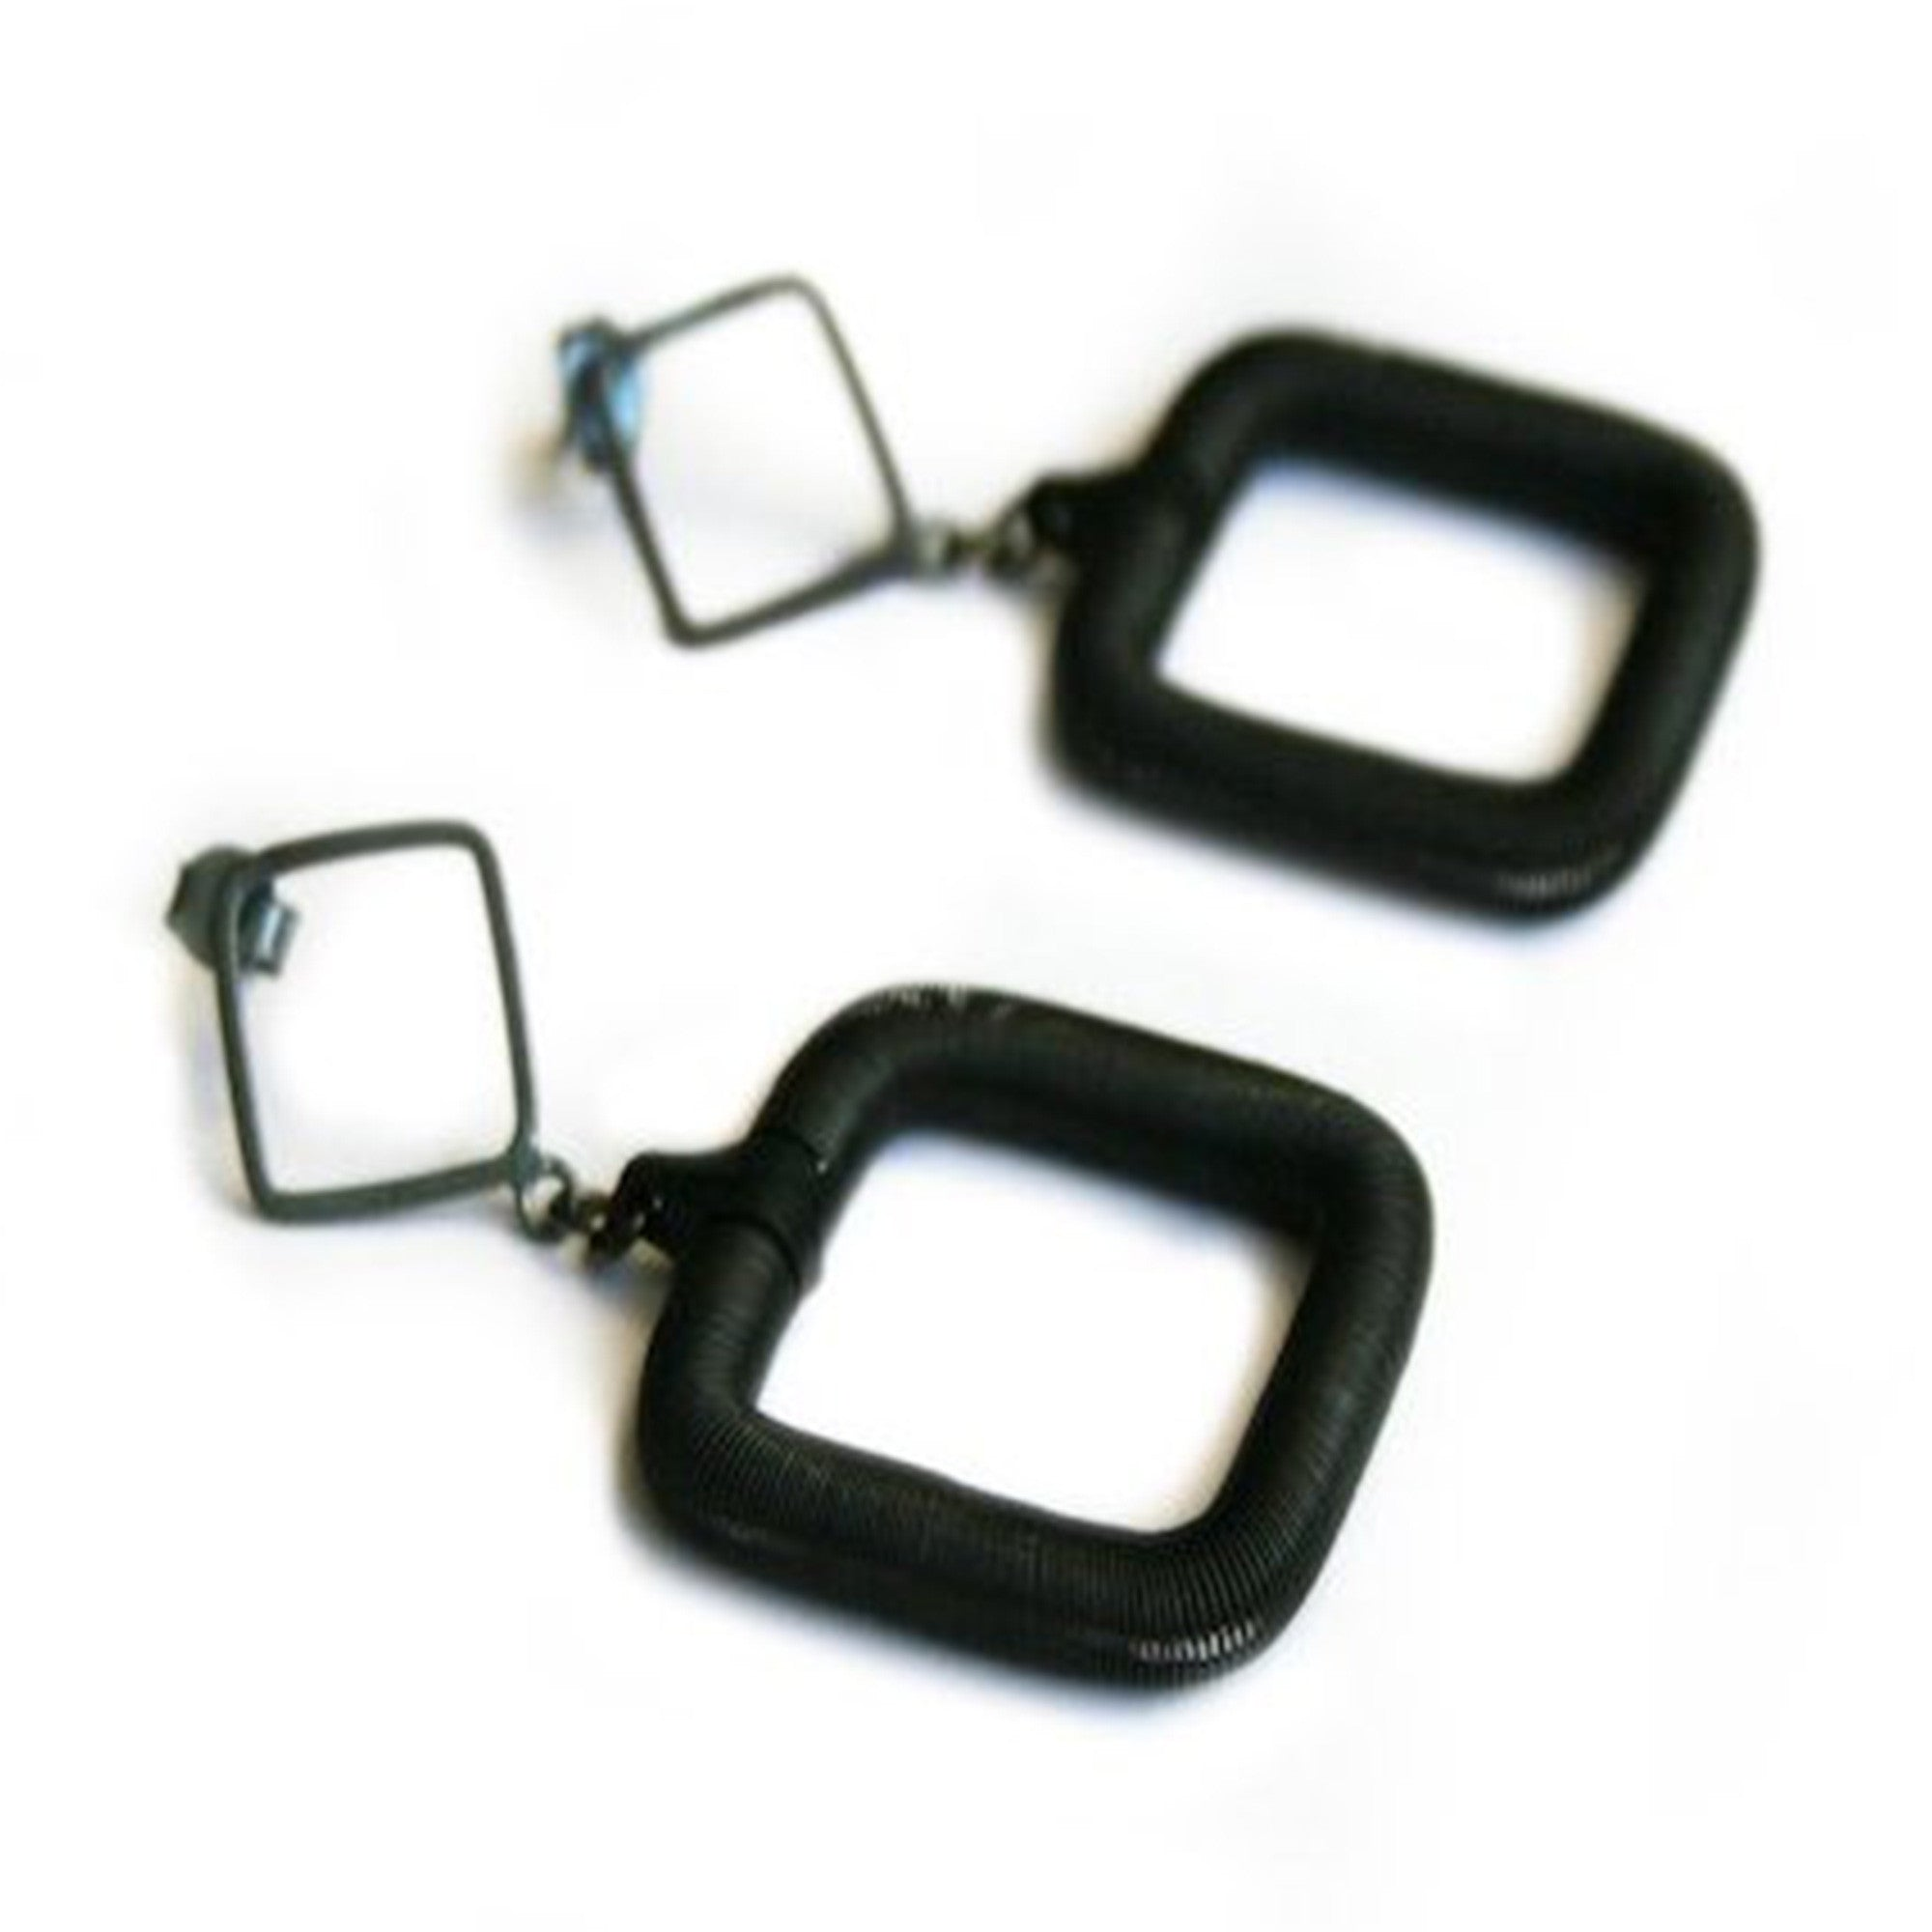 Hila Rawat Karni: Square Earrings